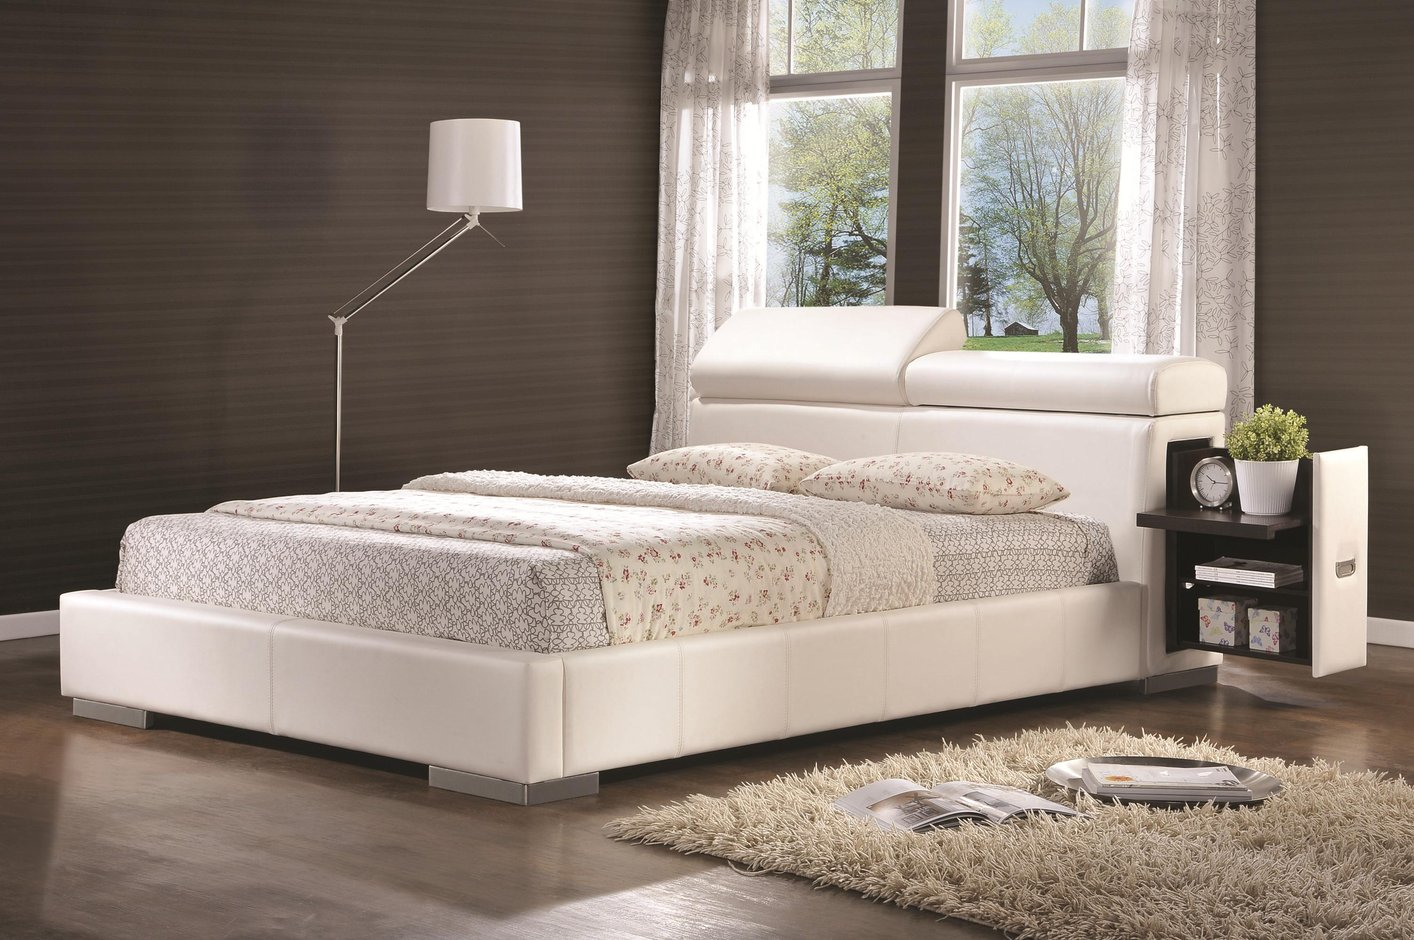 Coaster 300379q White Queen Size Leather Bed  StealASofa Furniture Outlet Los Angeles CA